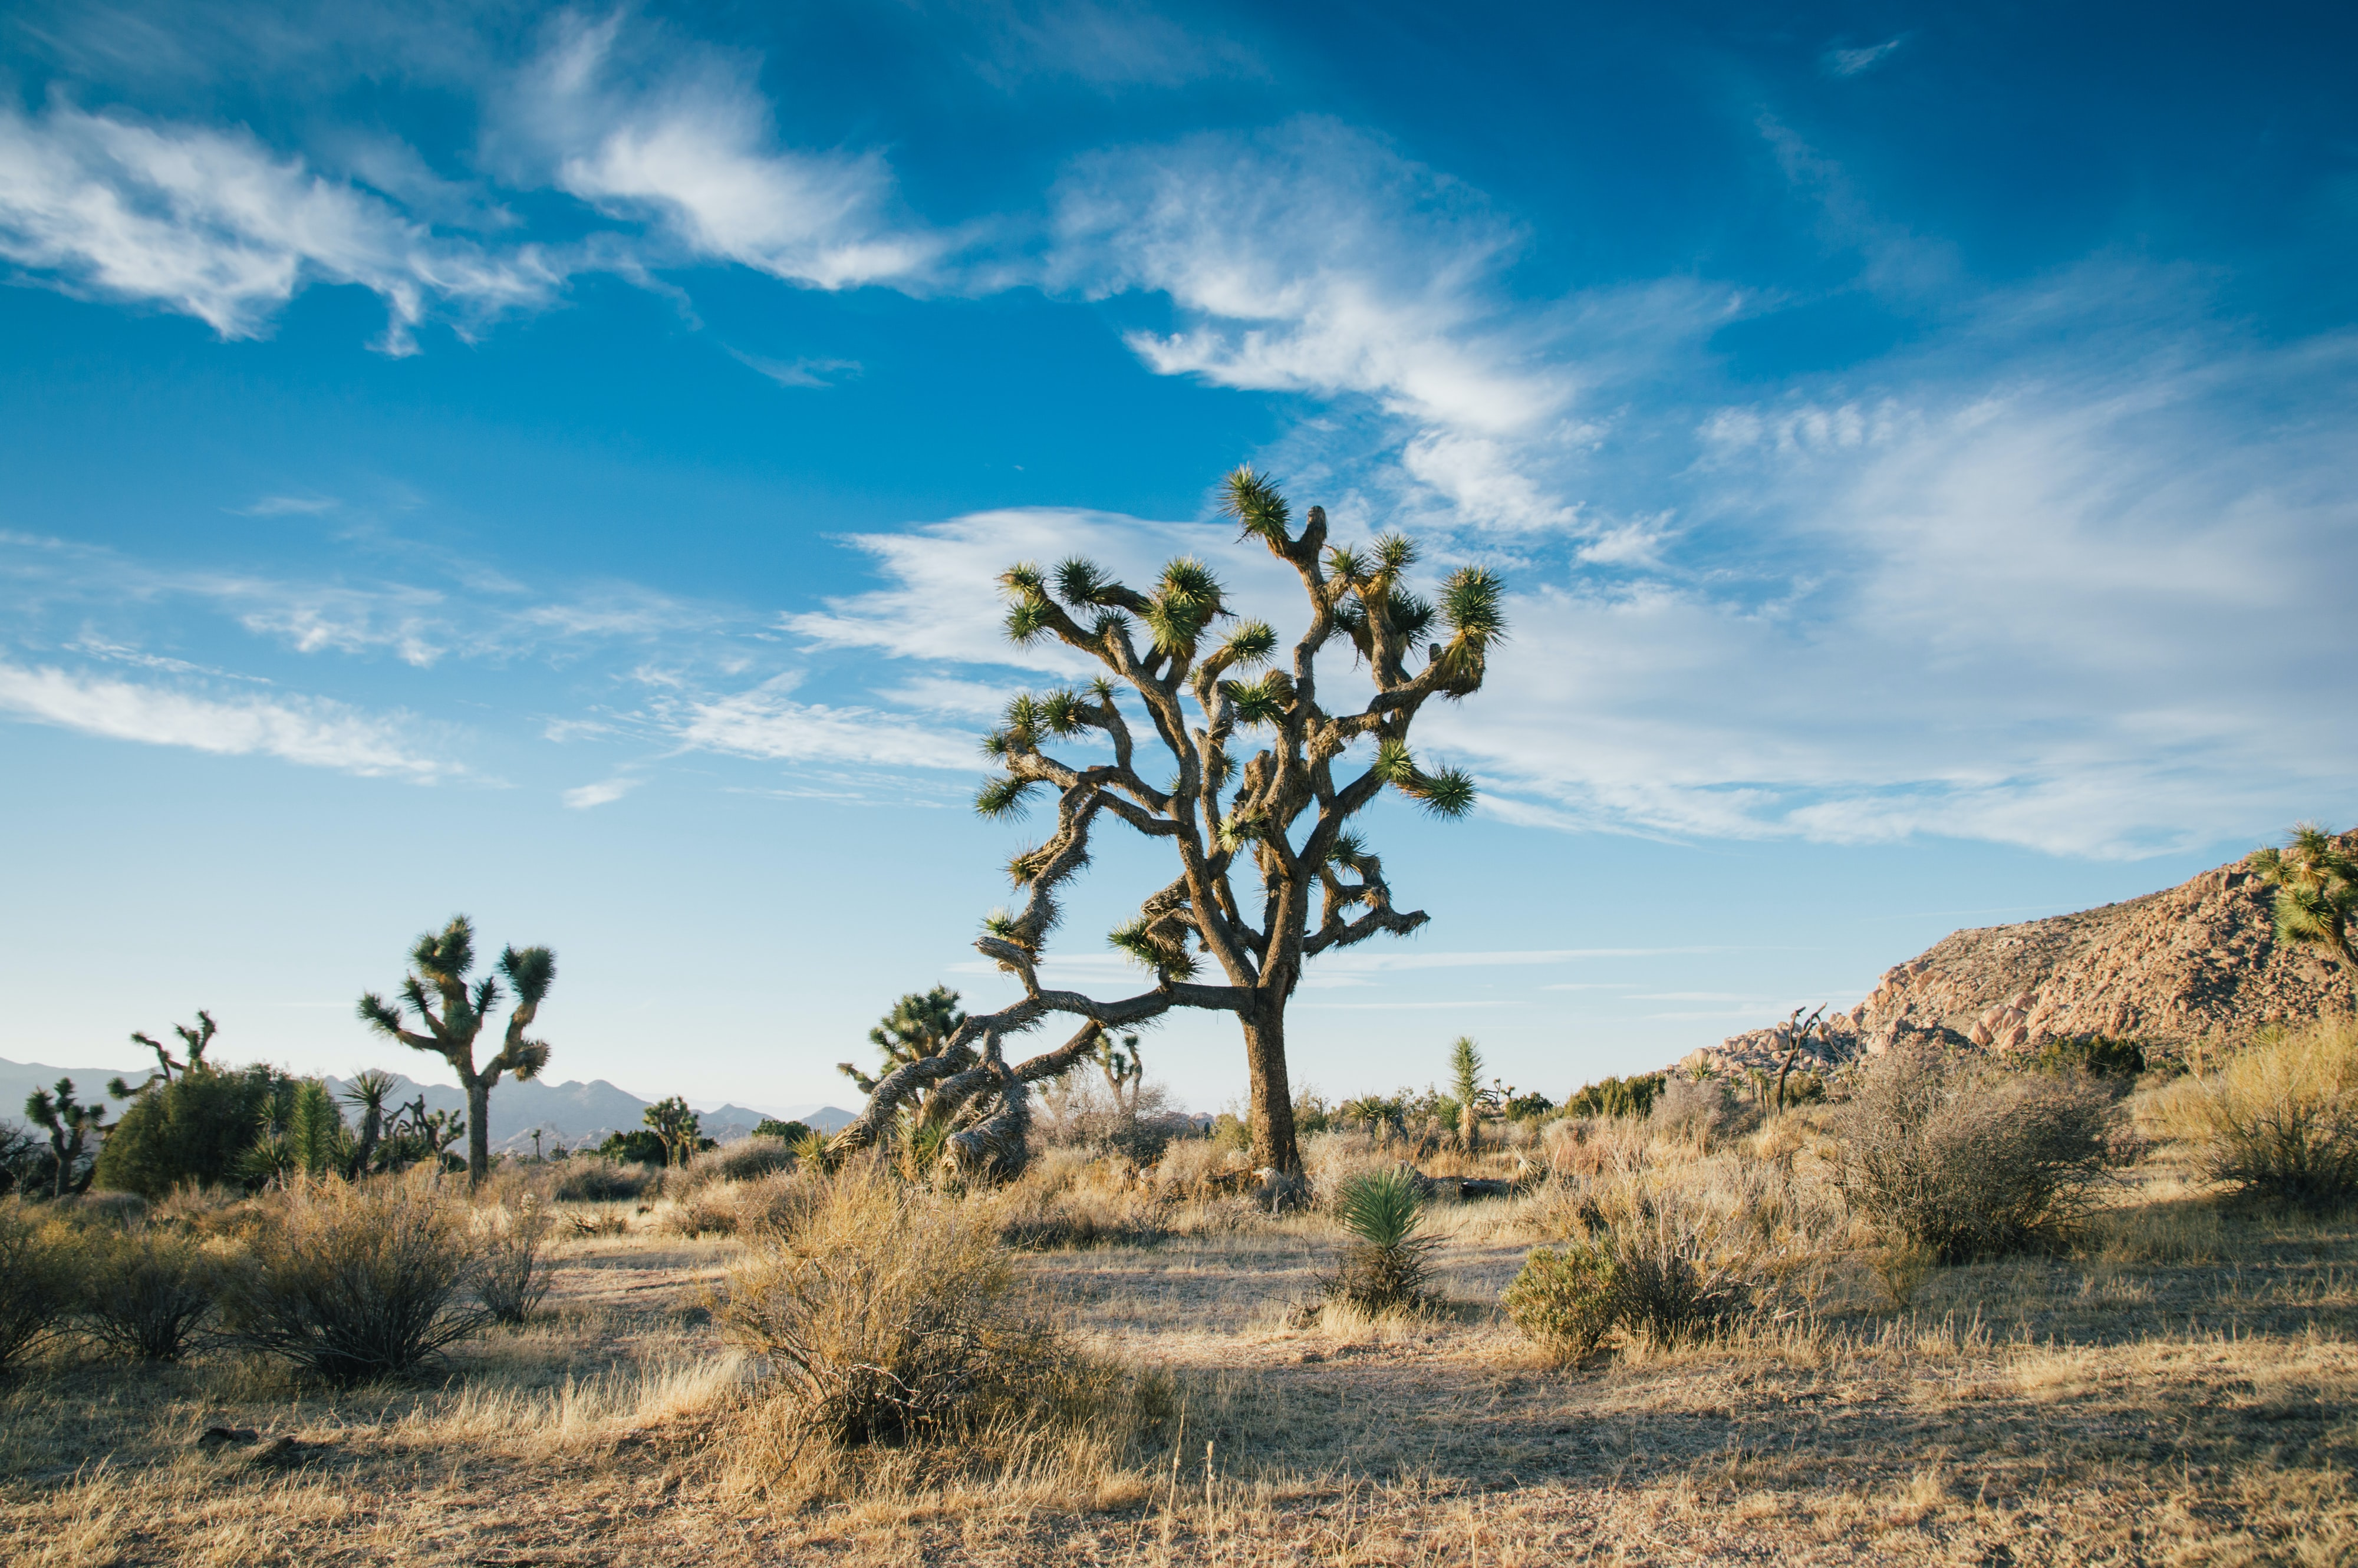 Unique foliage in the deserts of Joshua Tree National Park